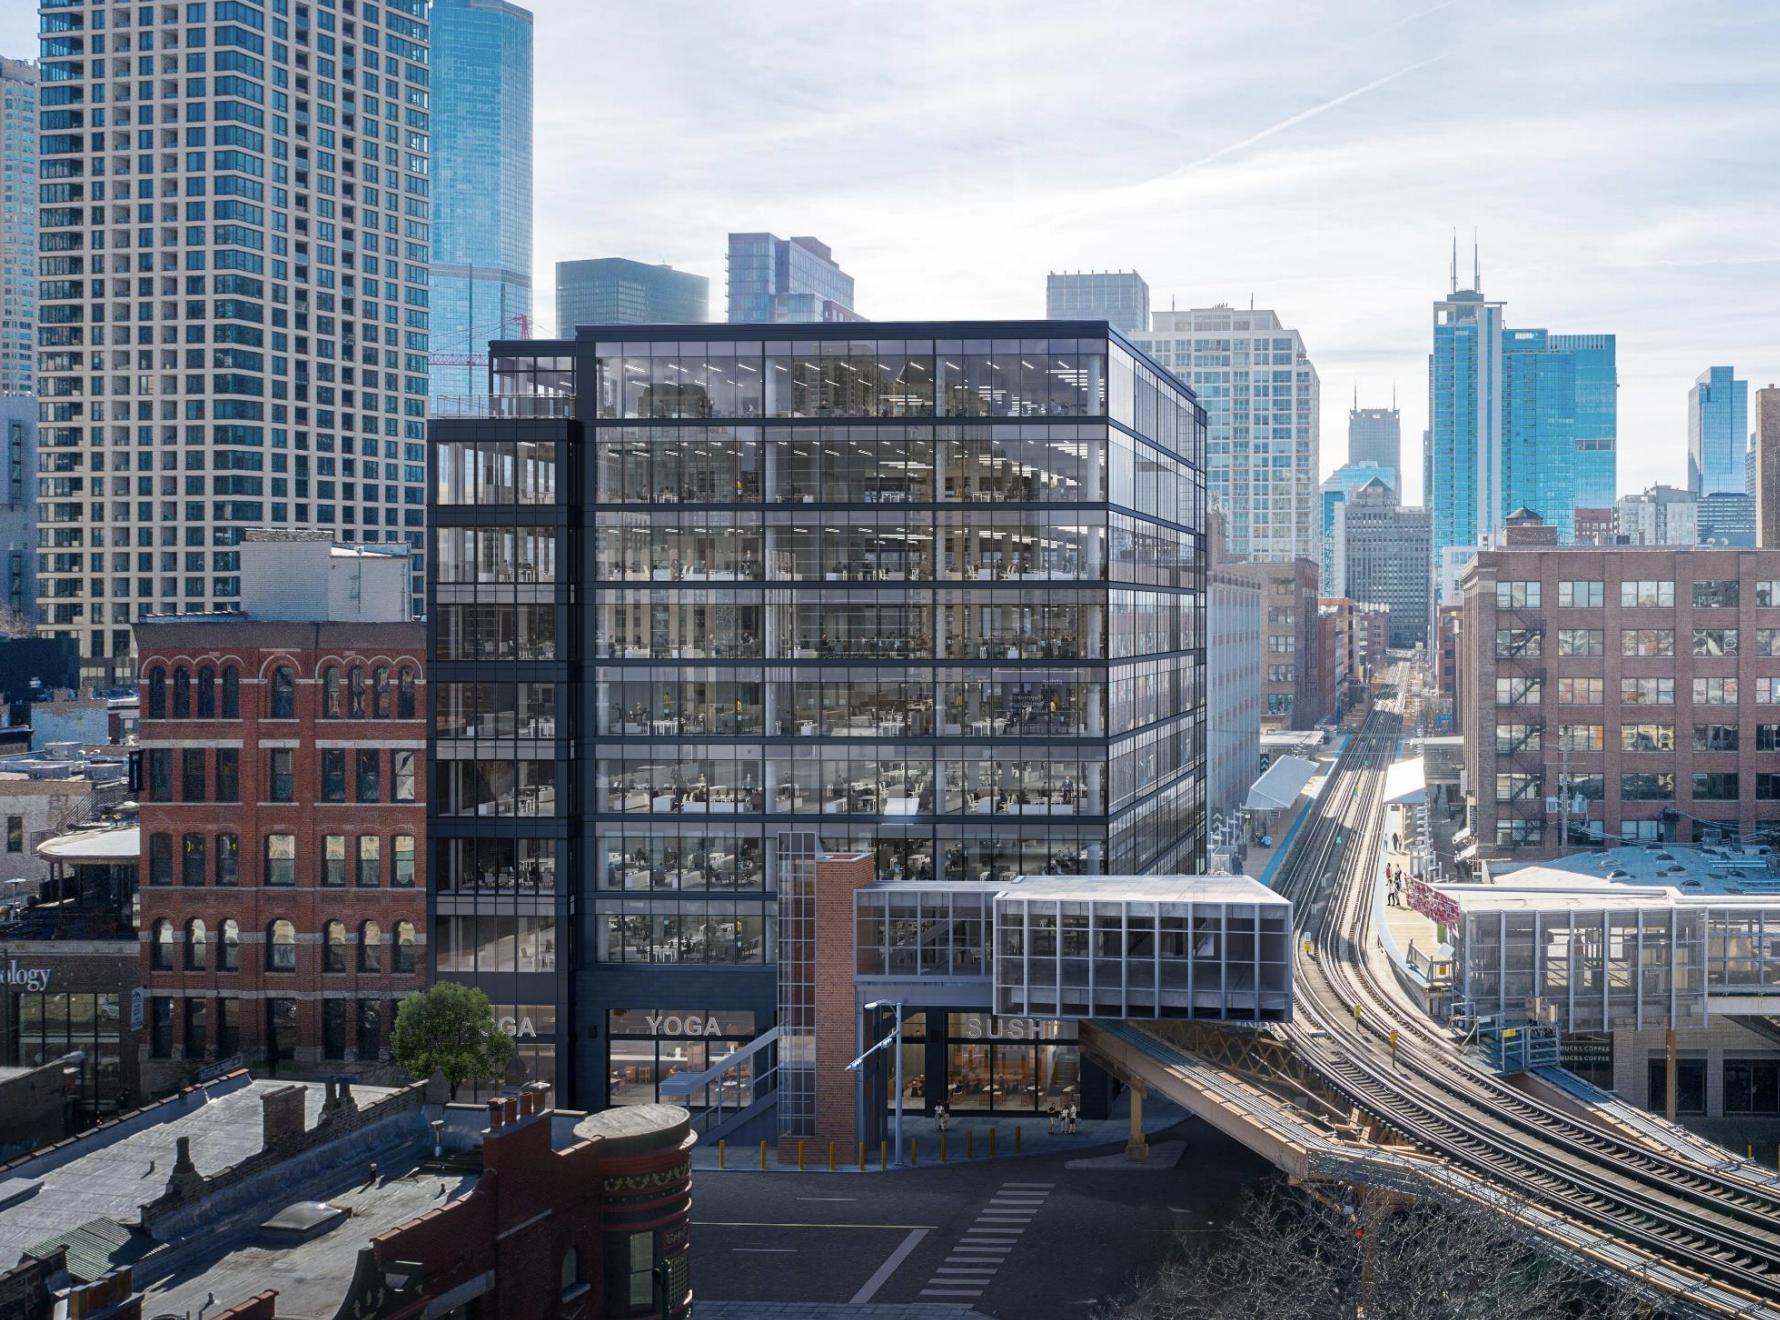 A rectangular glass and metal office building next to elevated train tracks. There are other tall buildings in the surrounding area.